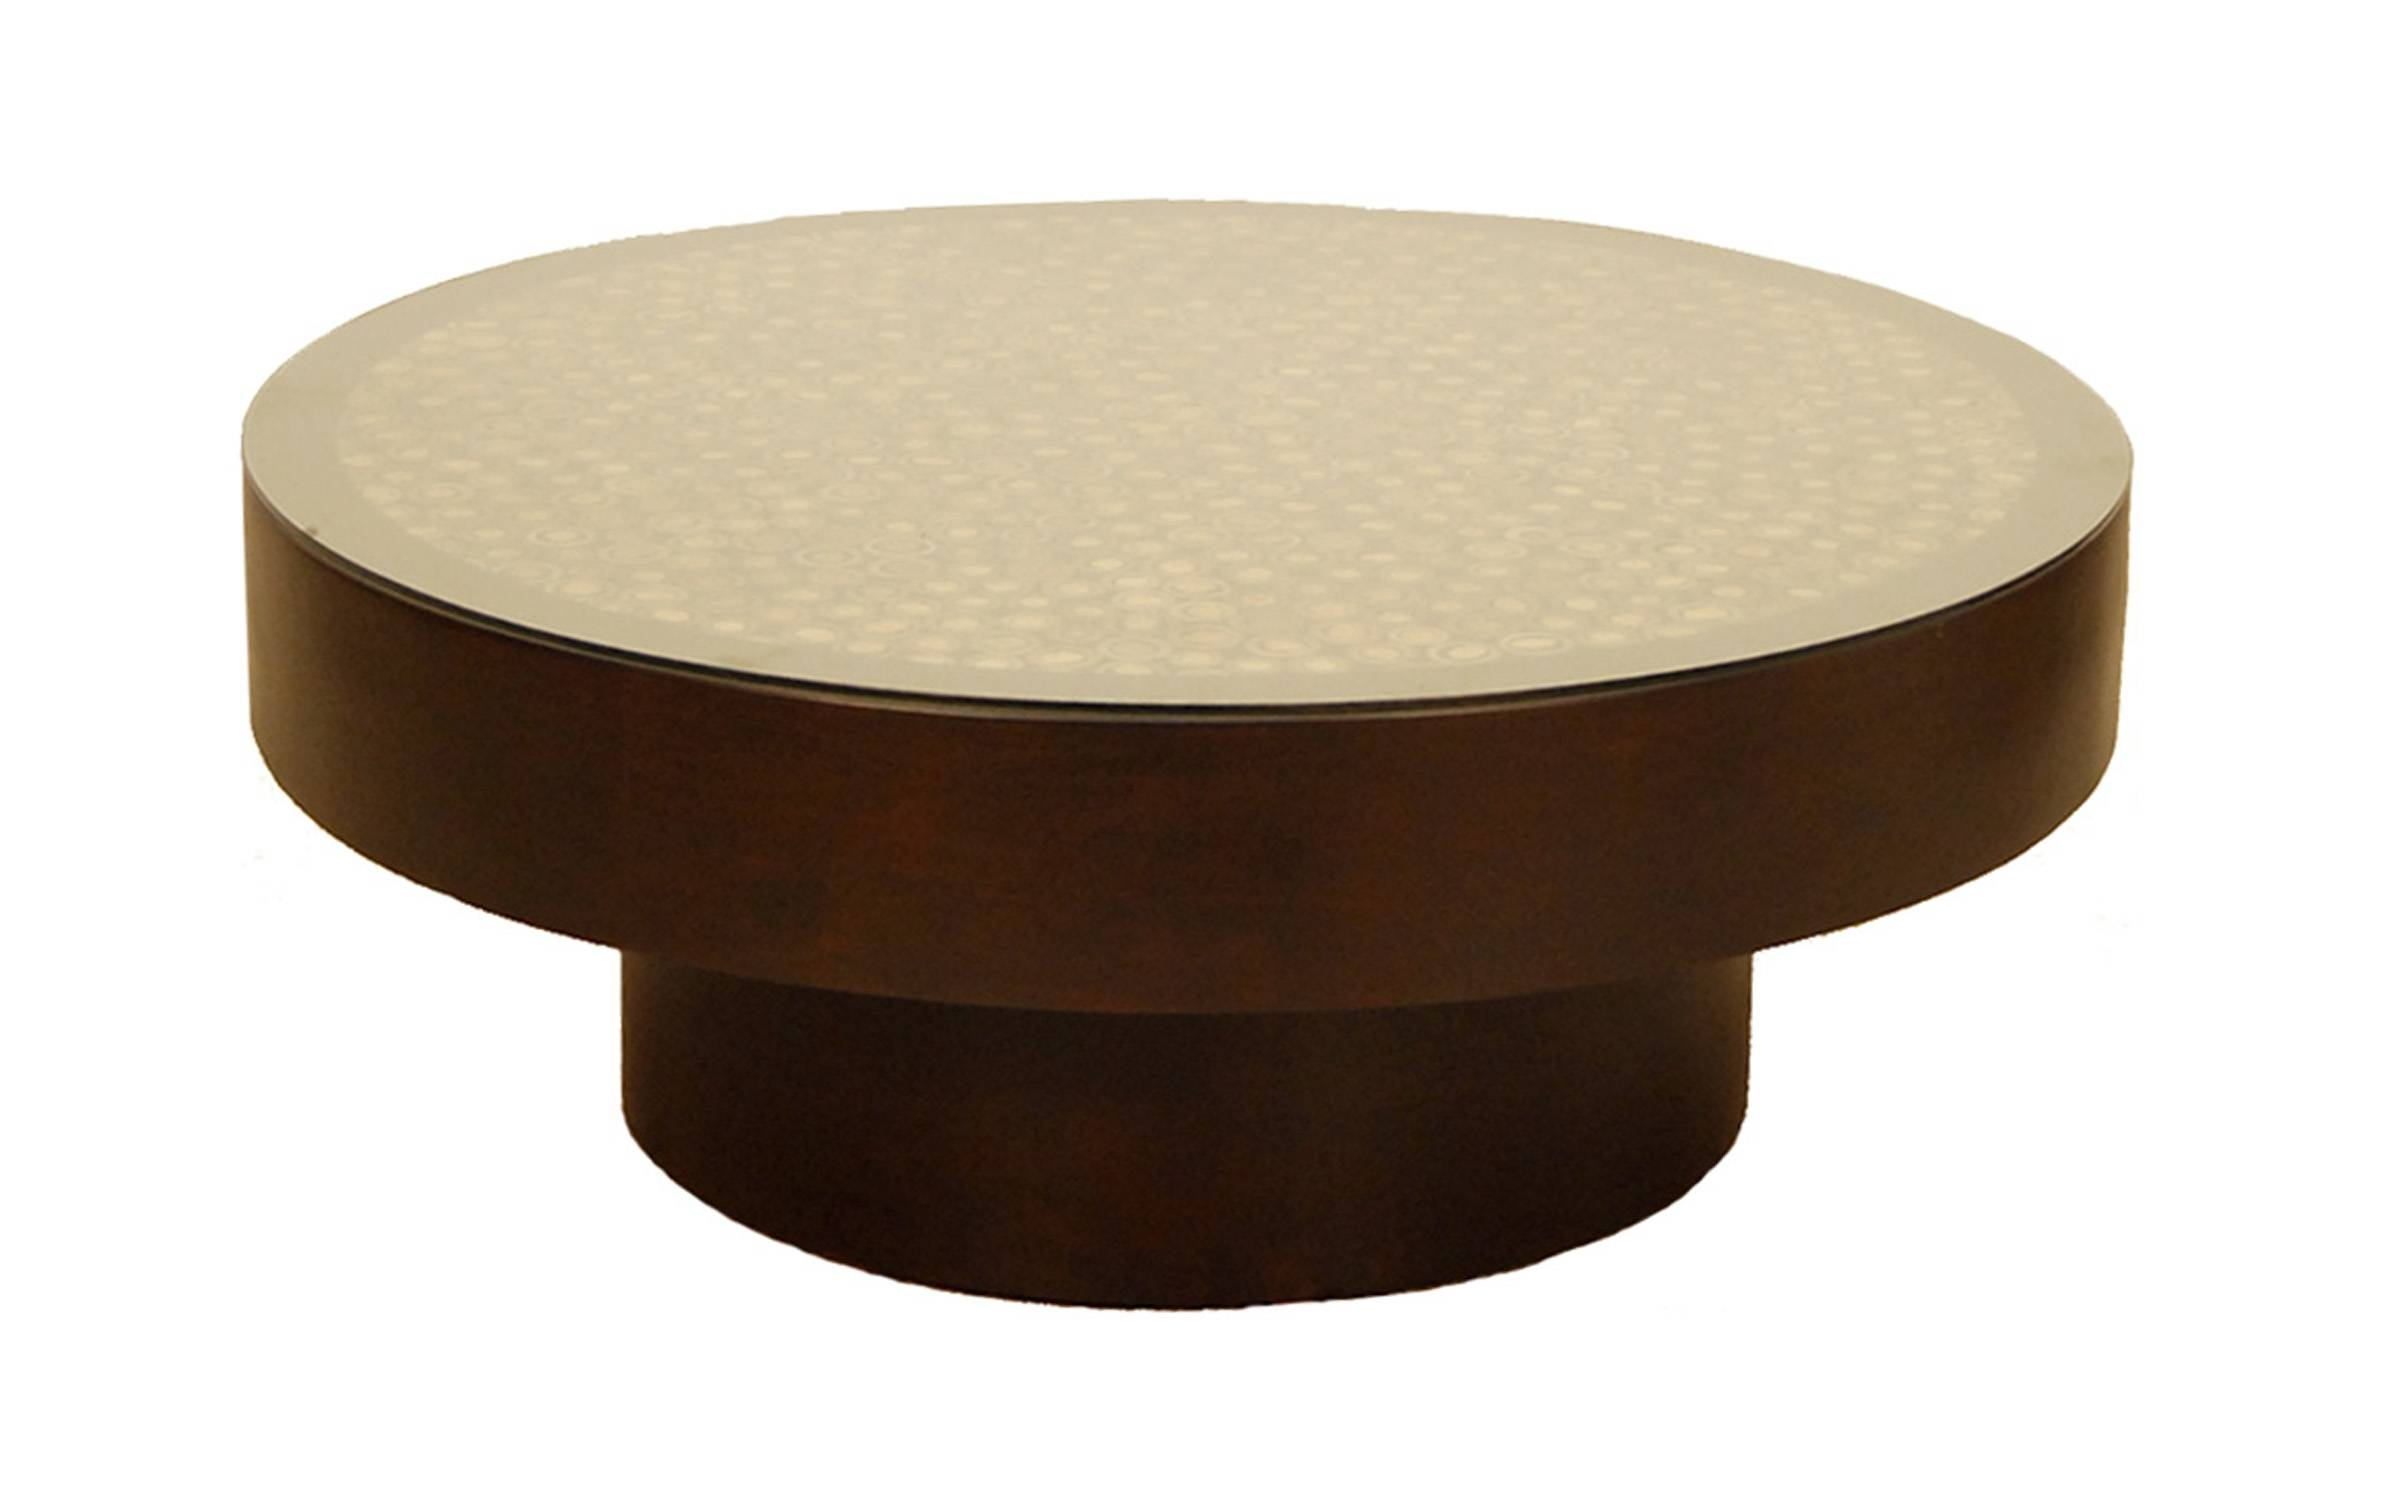 Larke Round Oak Tray Coffee Table Buy Now At Habitat Uk Light 363 intended for Round Oak Coffee Tables (Image 16 of 30)